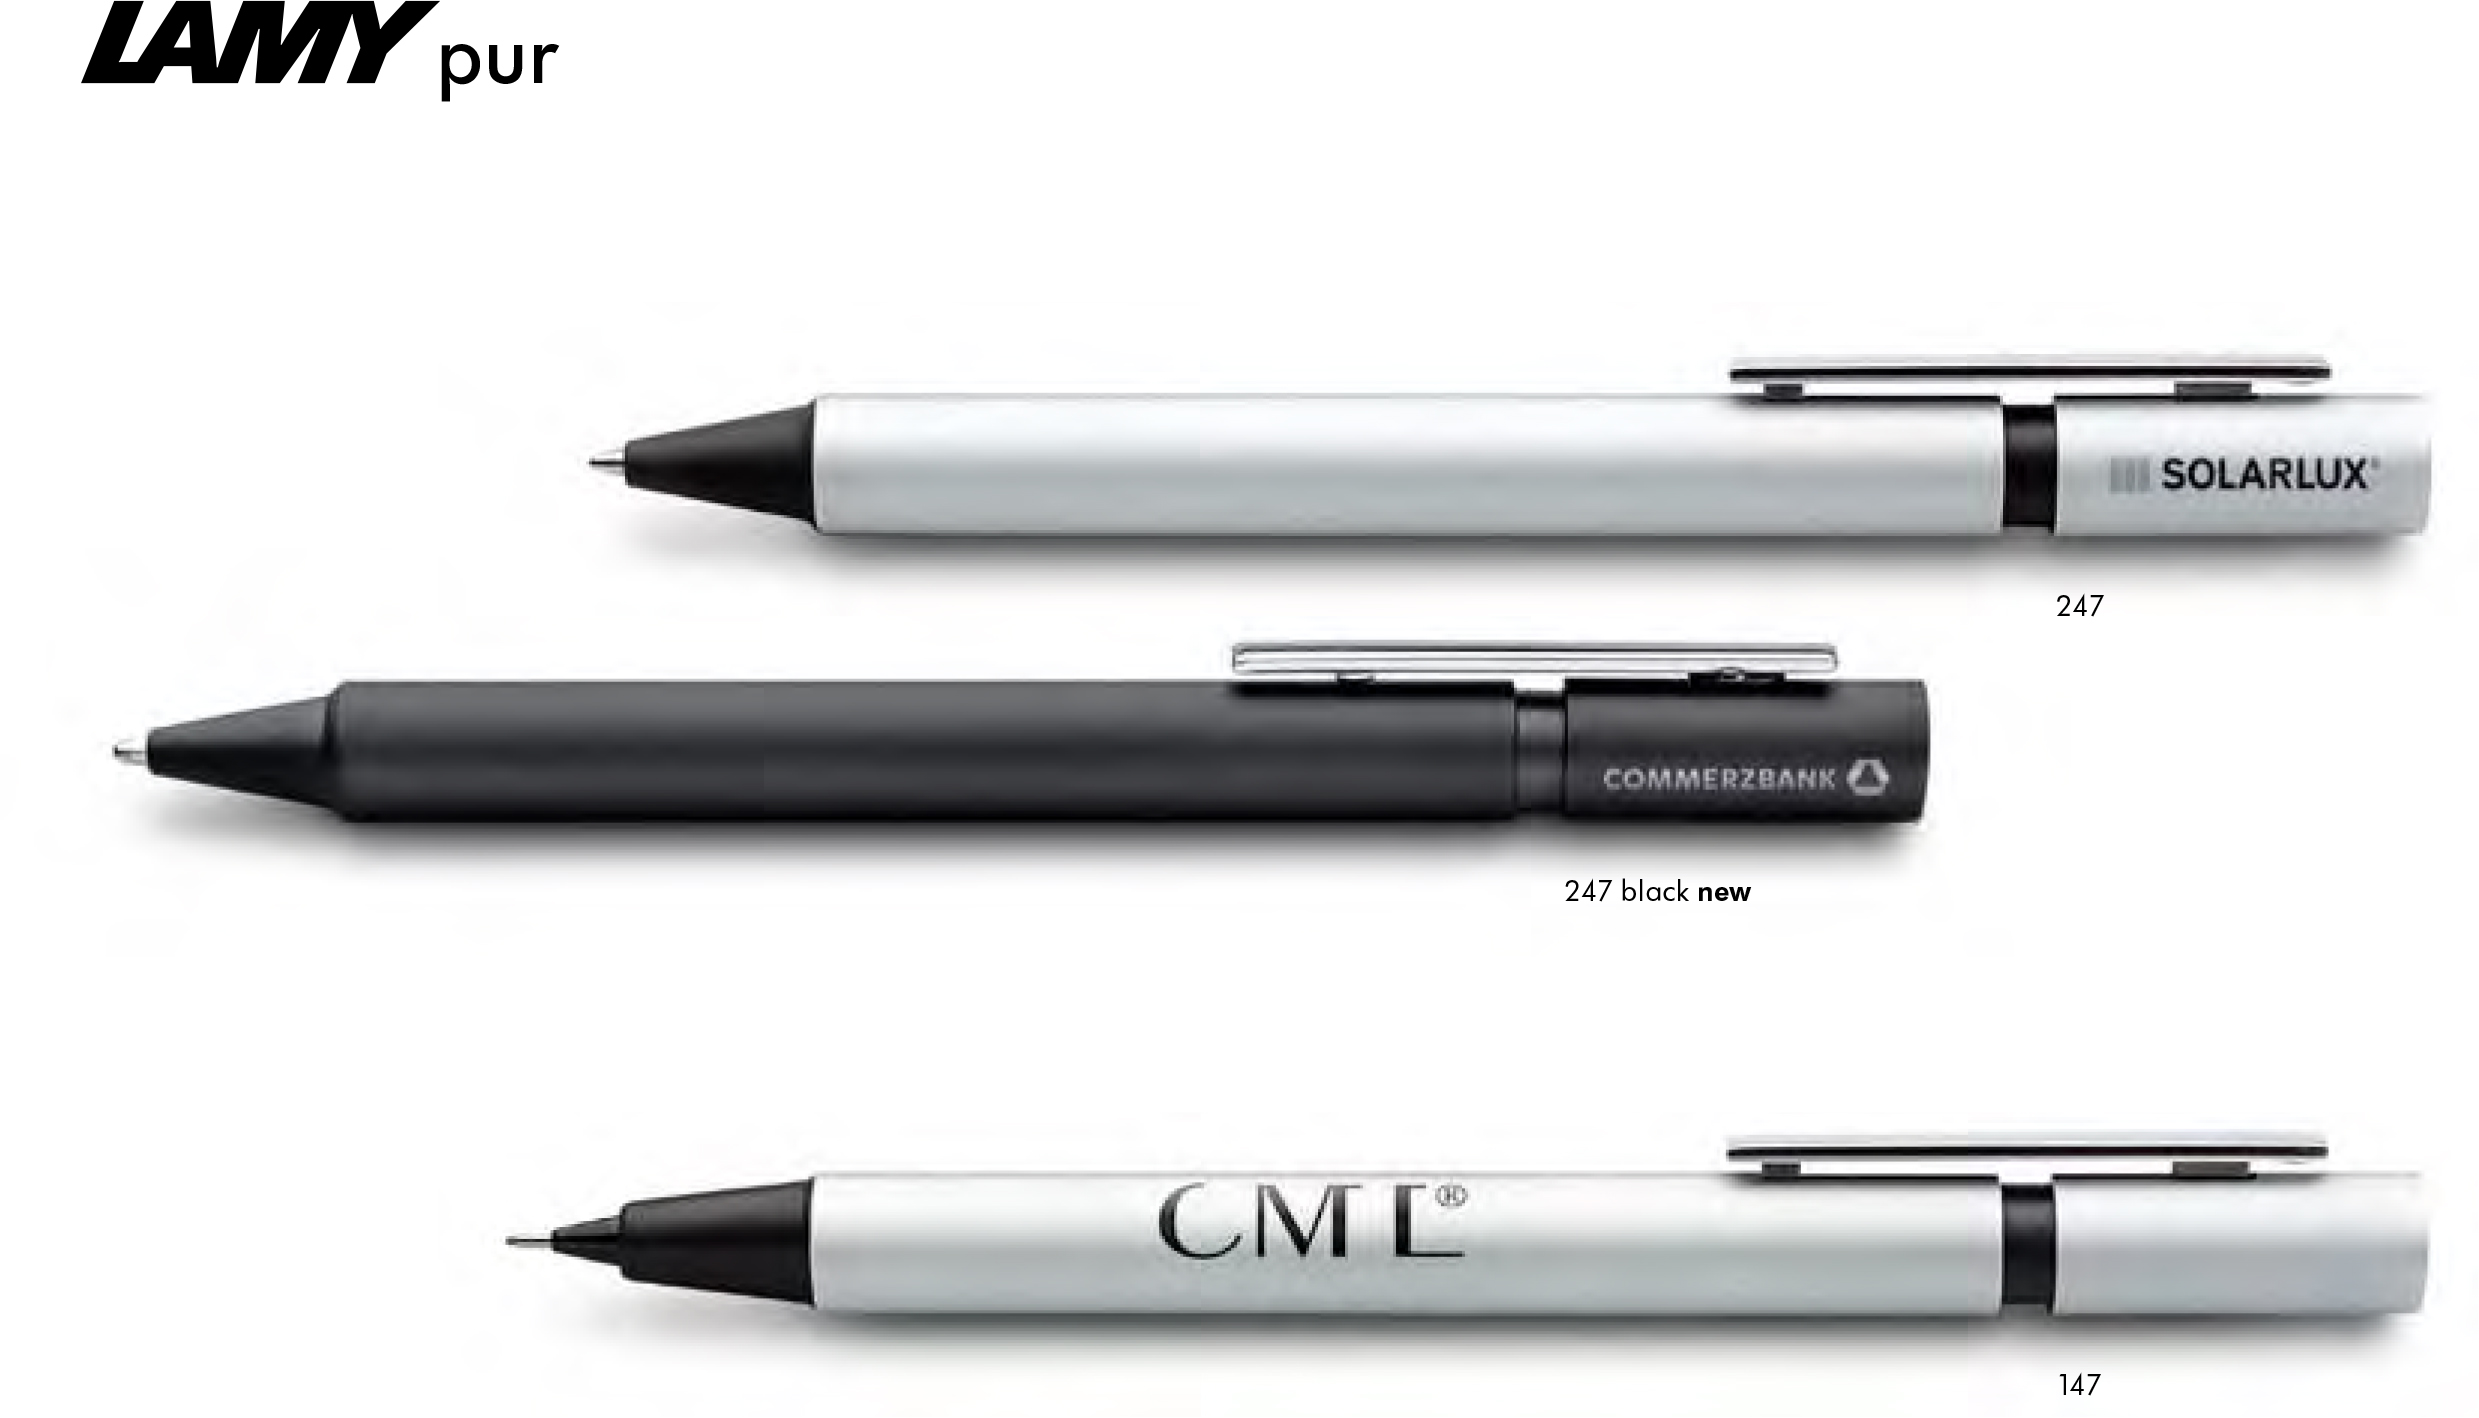 Large image for Lamy Pur